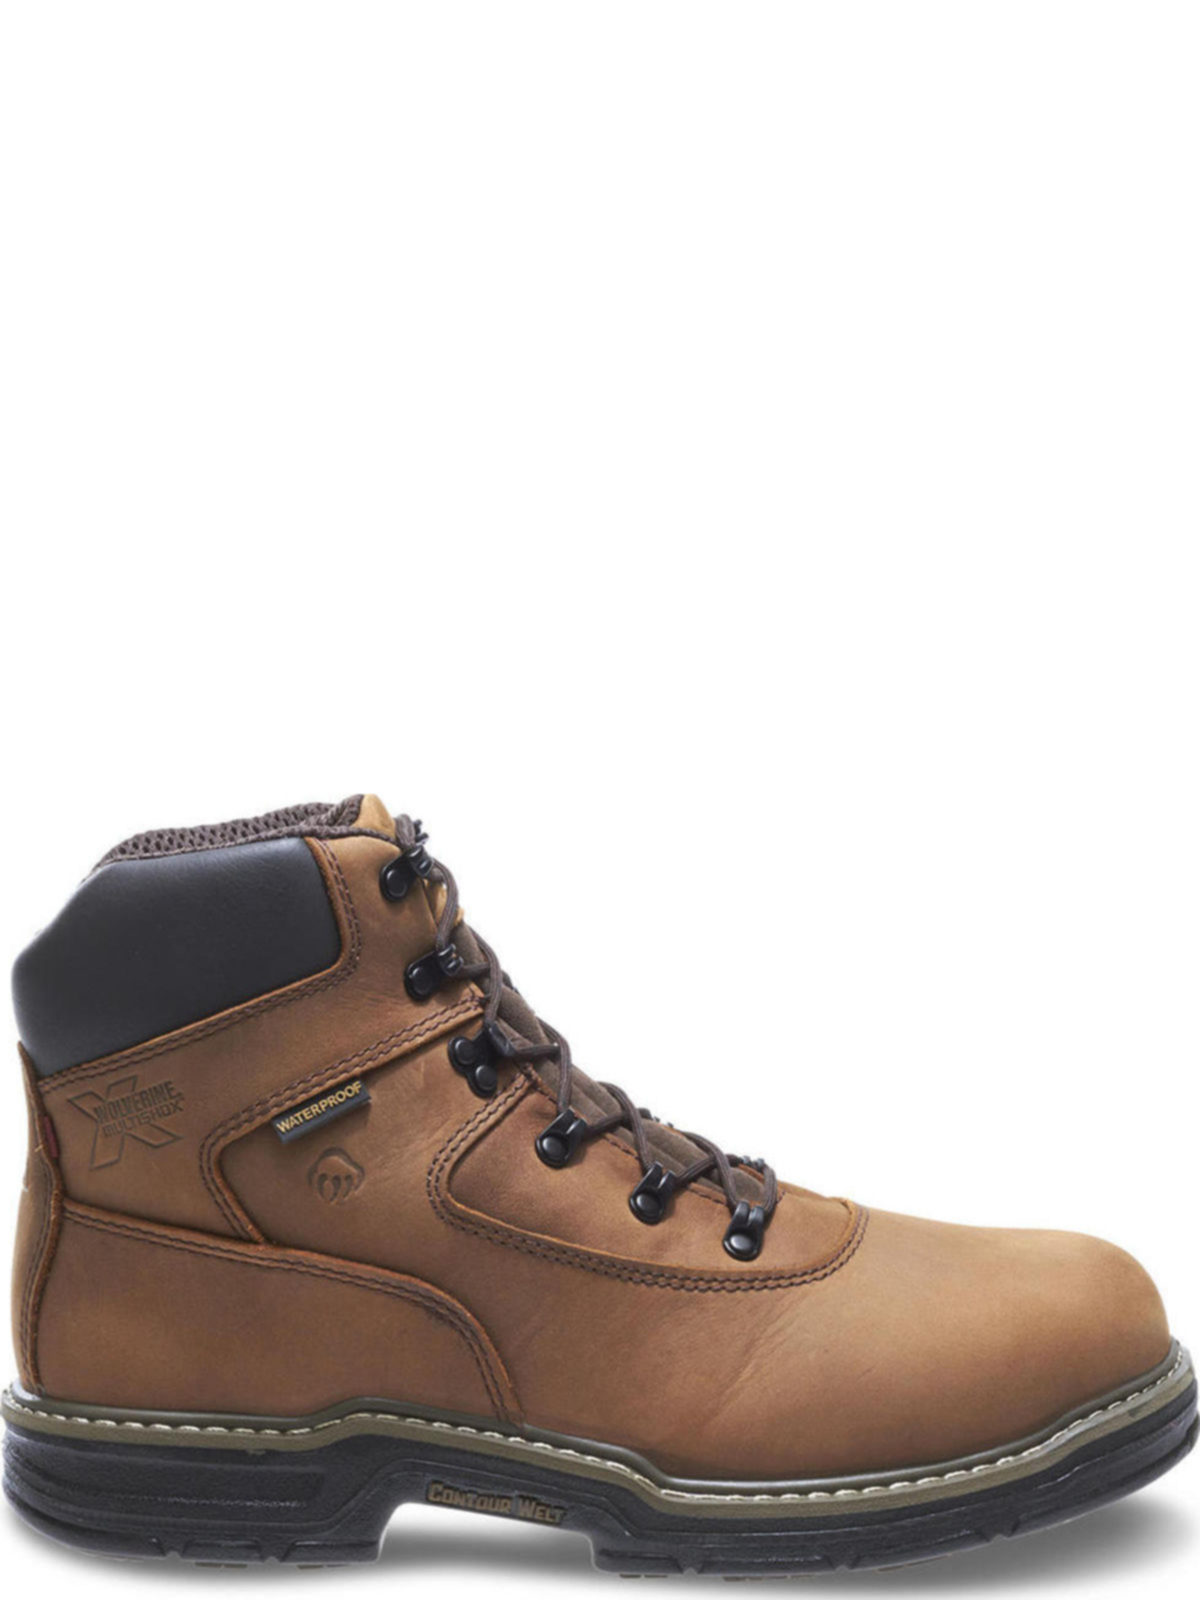 0ef9ff31da6 Wolverine Mens Marauder Waterproof Steel-Toe EH Lace Up 6